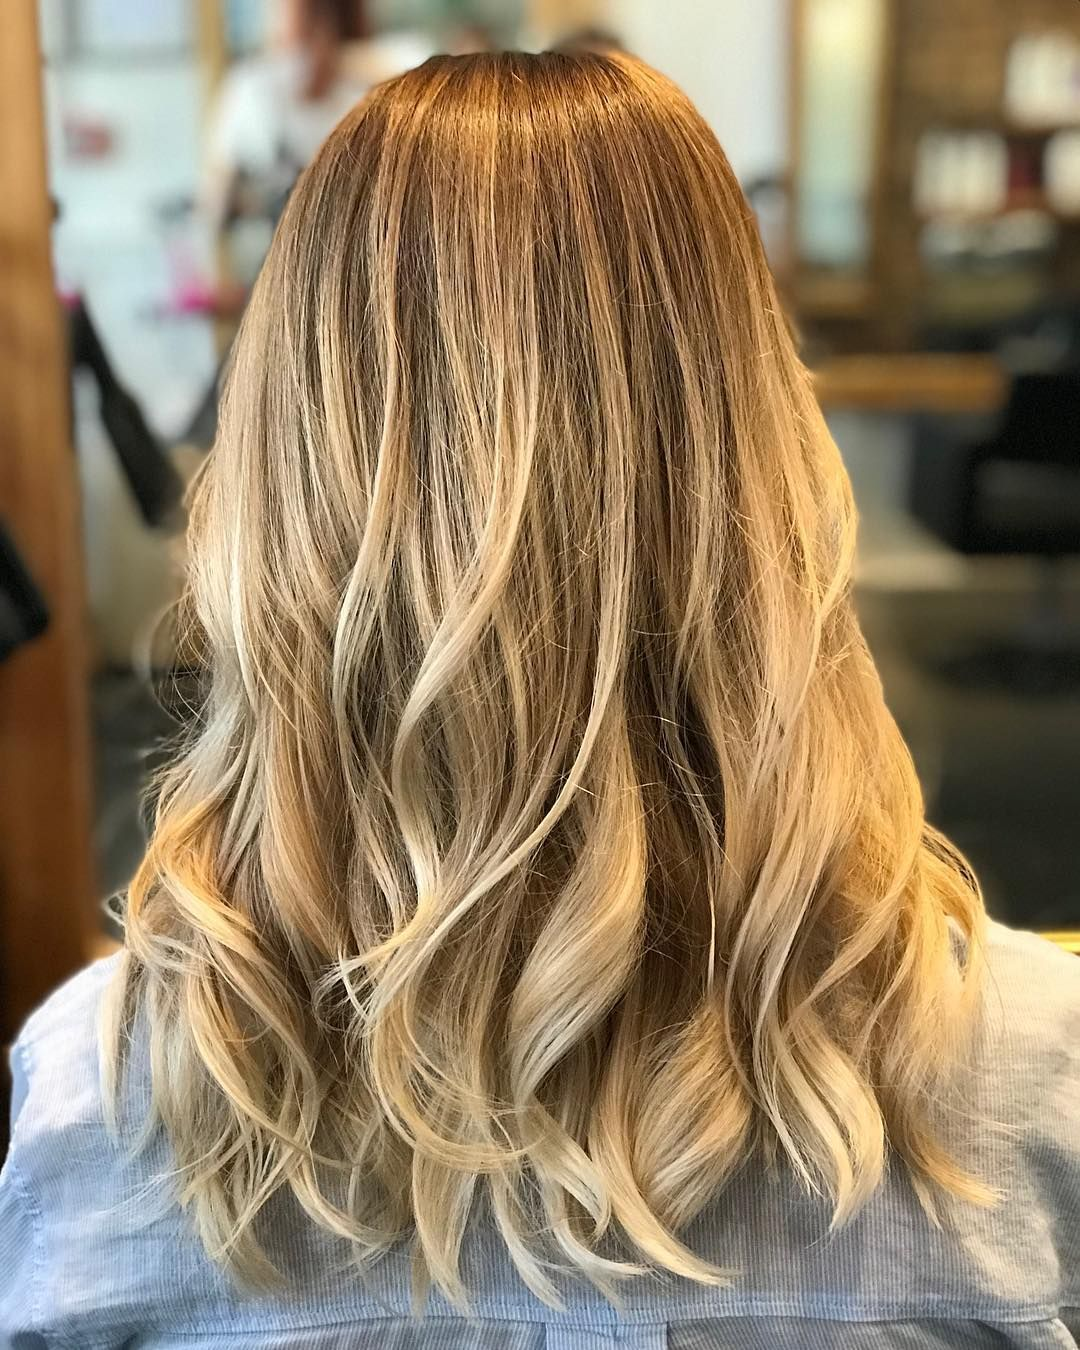 Creamy Dreamy Hair Perfection Katie Showing Us Why Shes So